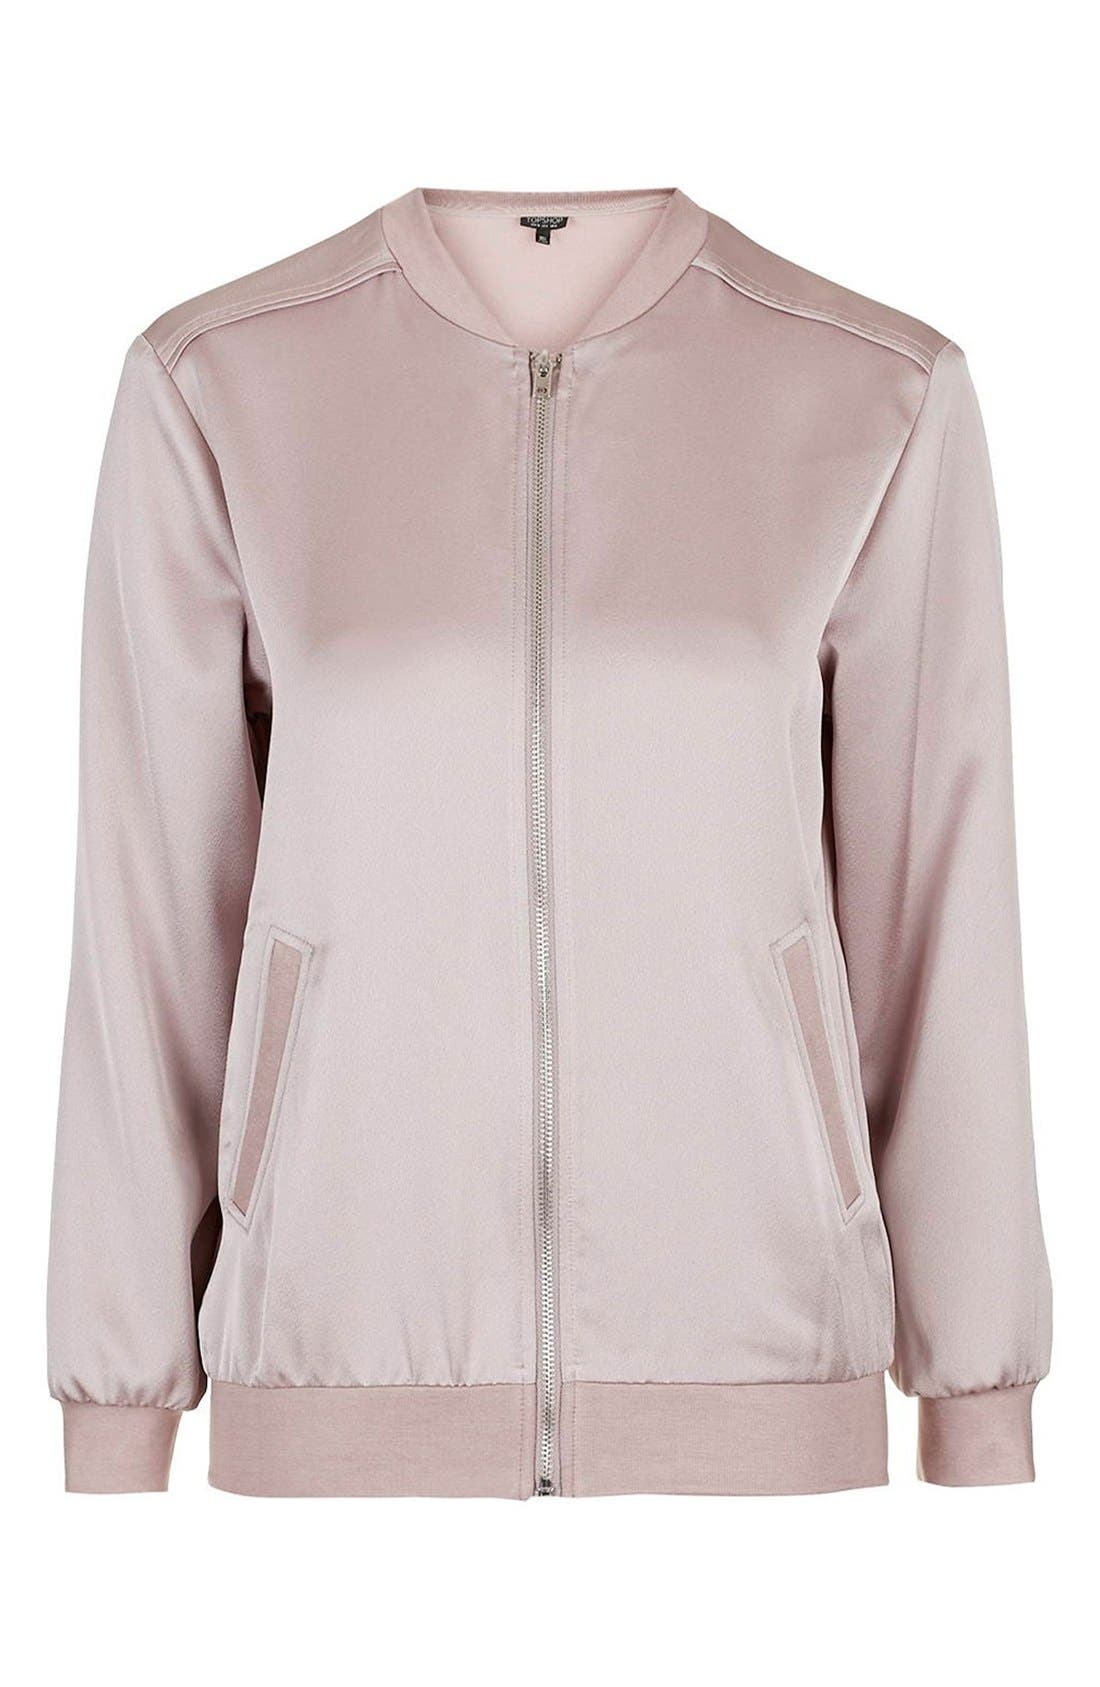 Satin Bomber Jacket,                             Alternate thumbnail 28, color,